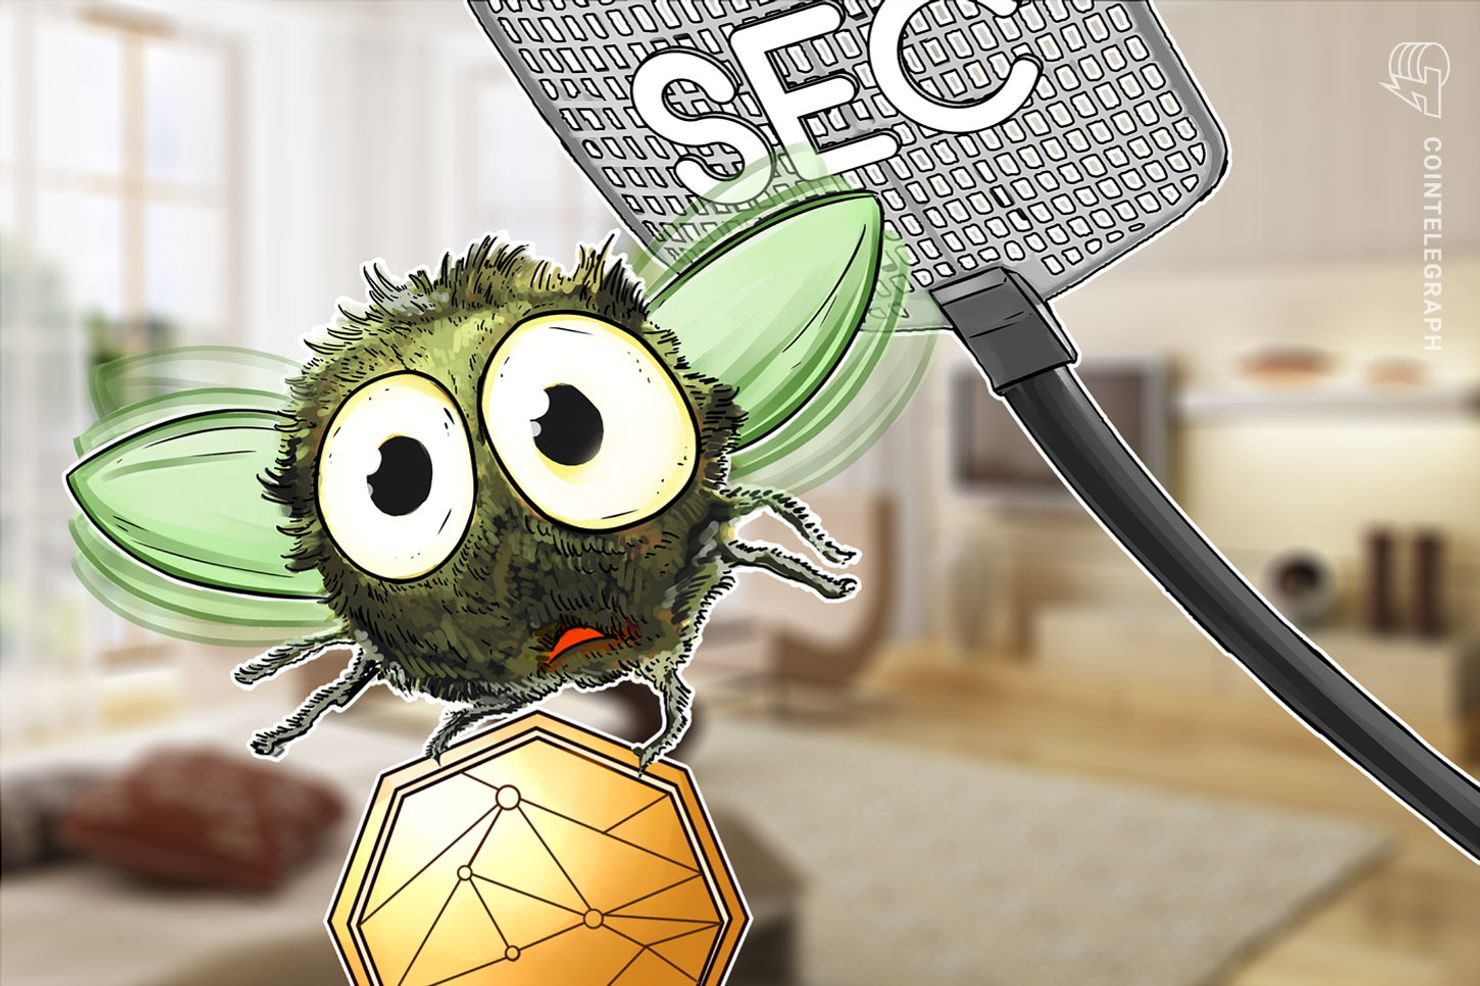 US SEC Seeks Sanctions Against Individuals Behind Alleged Crypto Scam PlexCoin